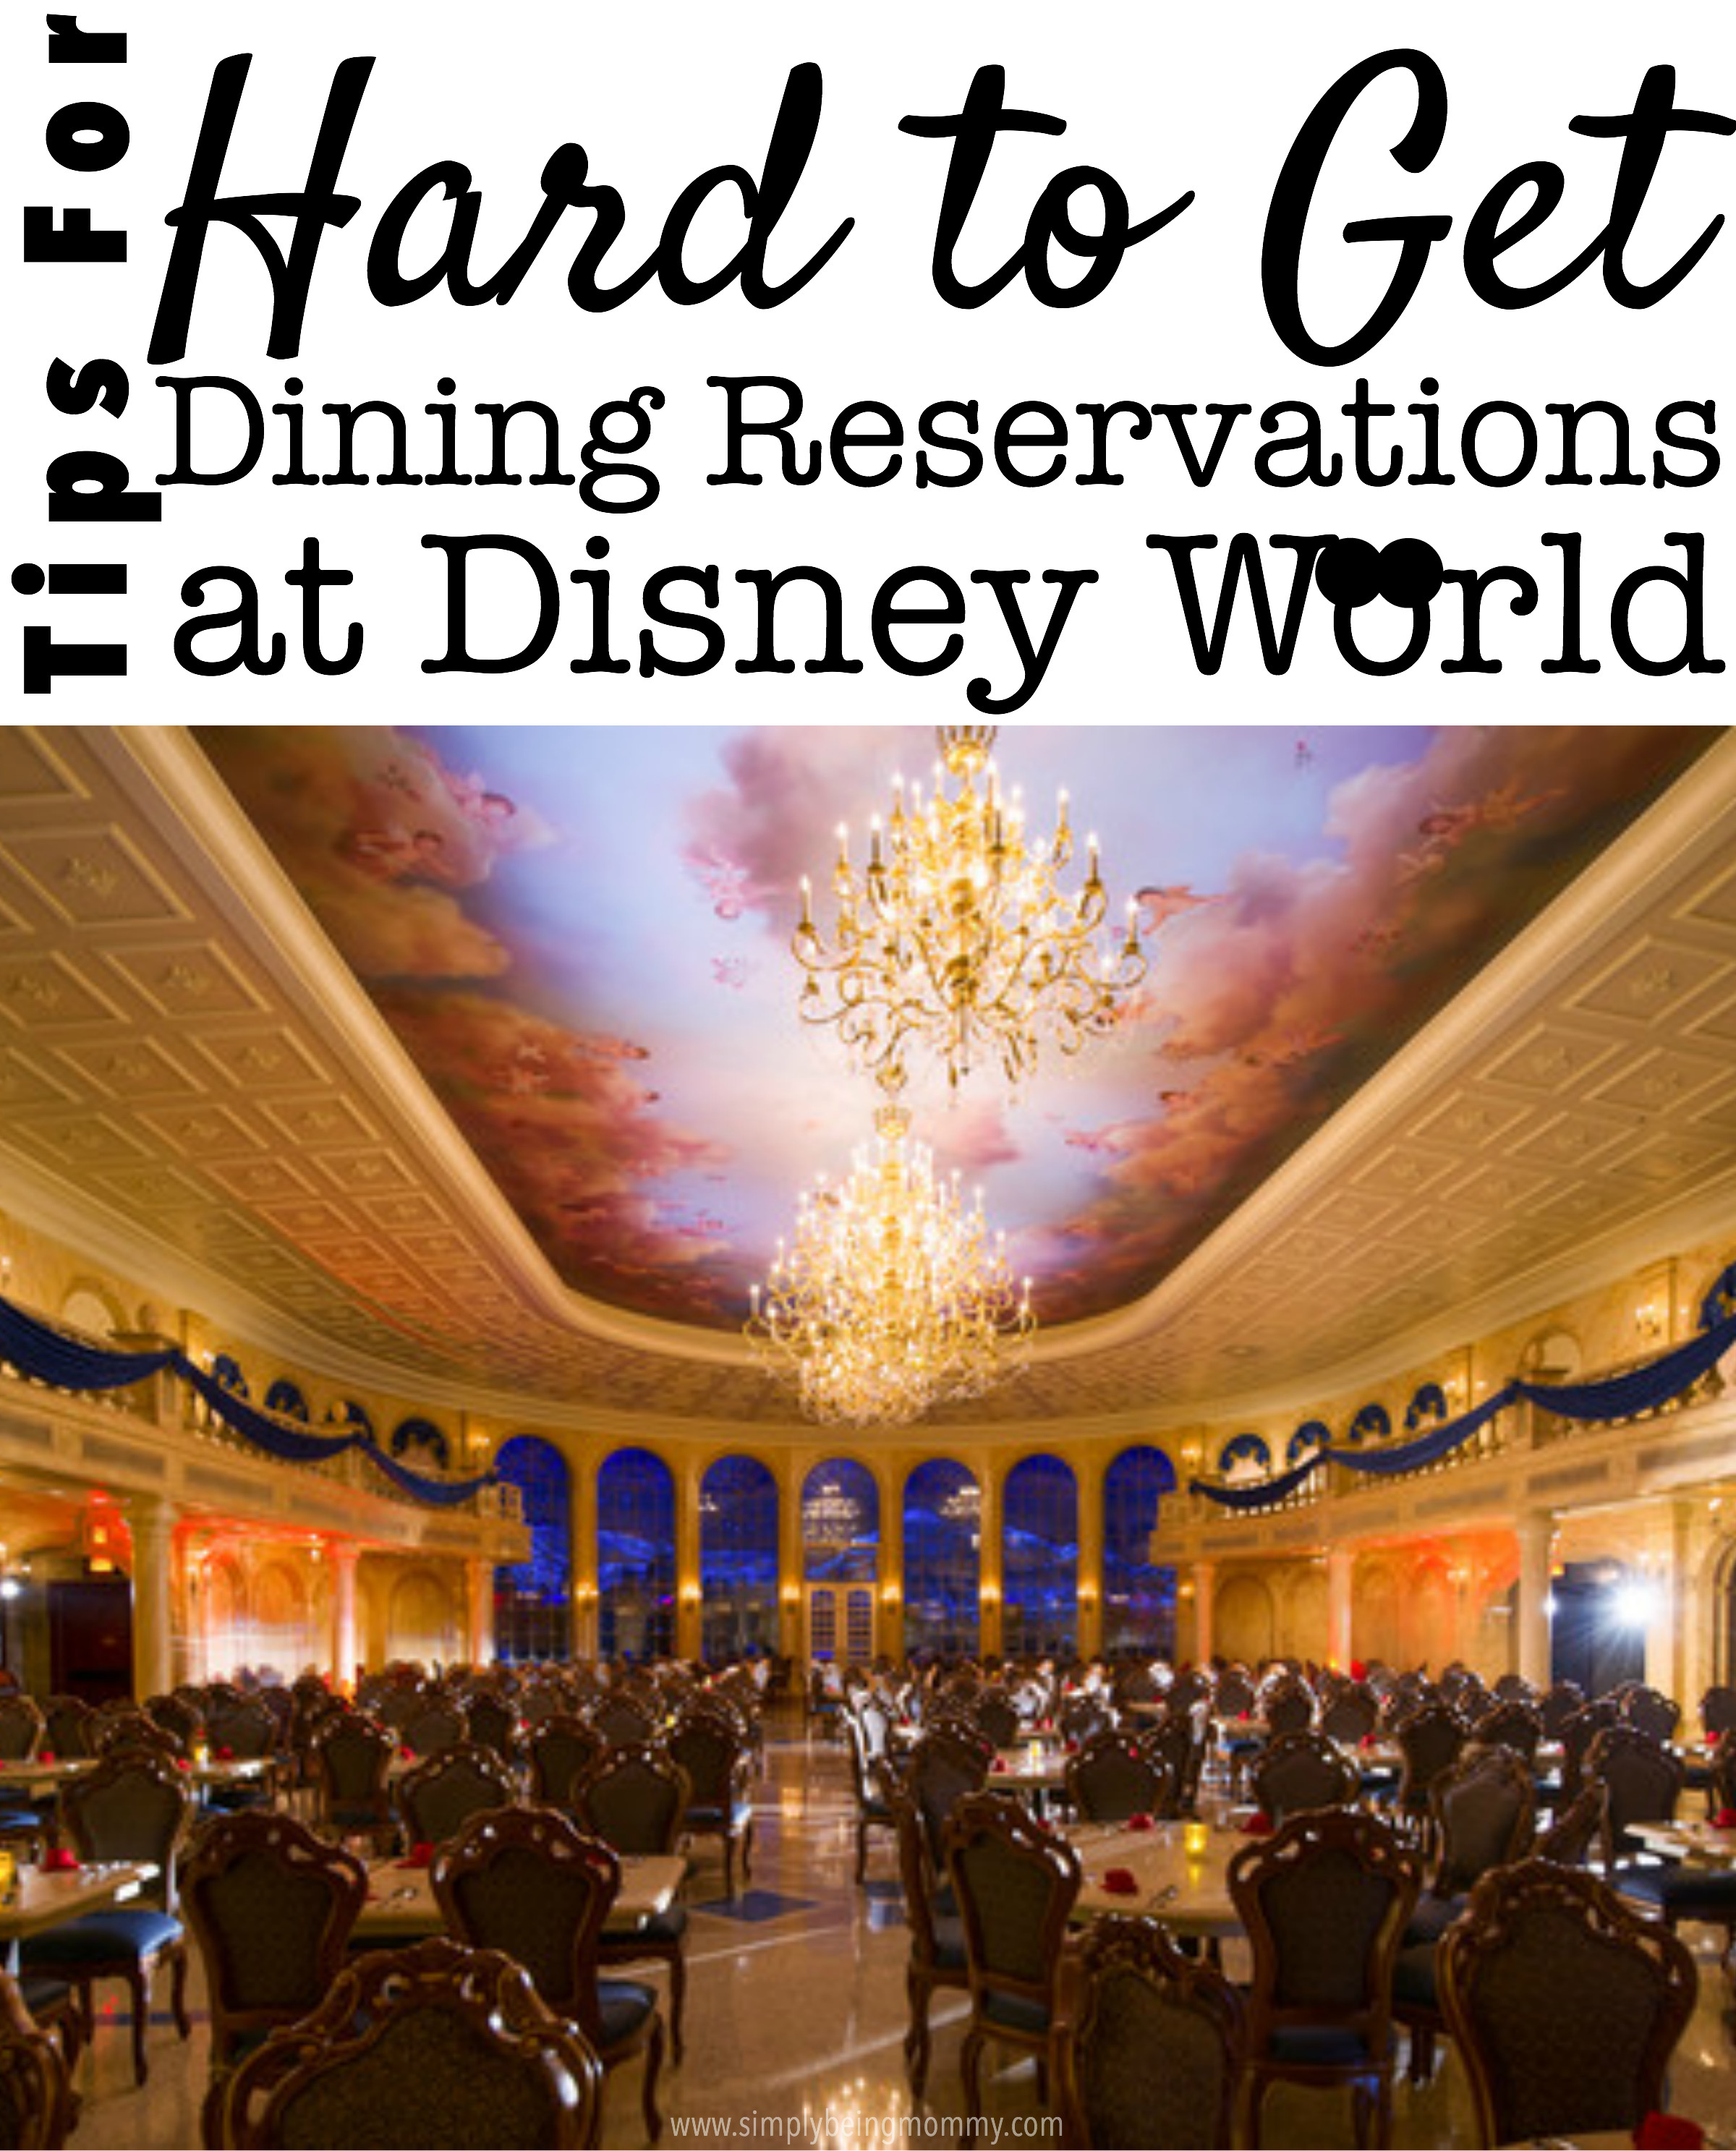 Disney Dinner Reservations  Tips for Hard to Get Dining Reservations at Disney World